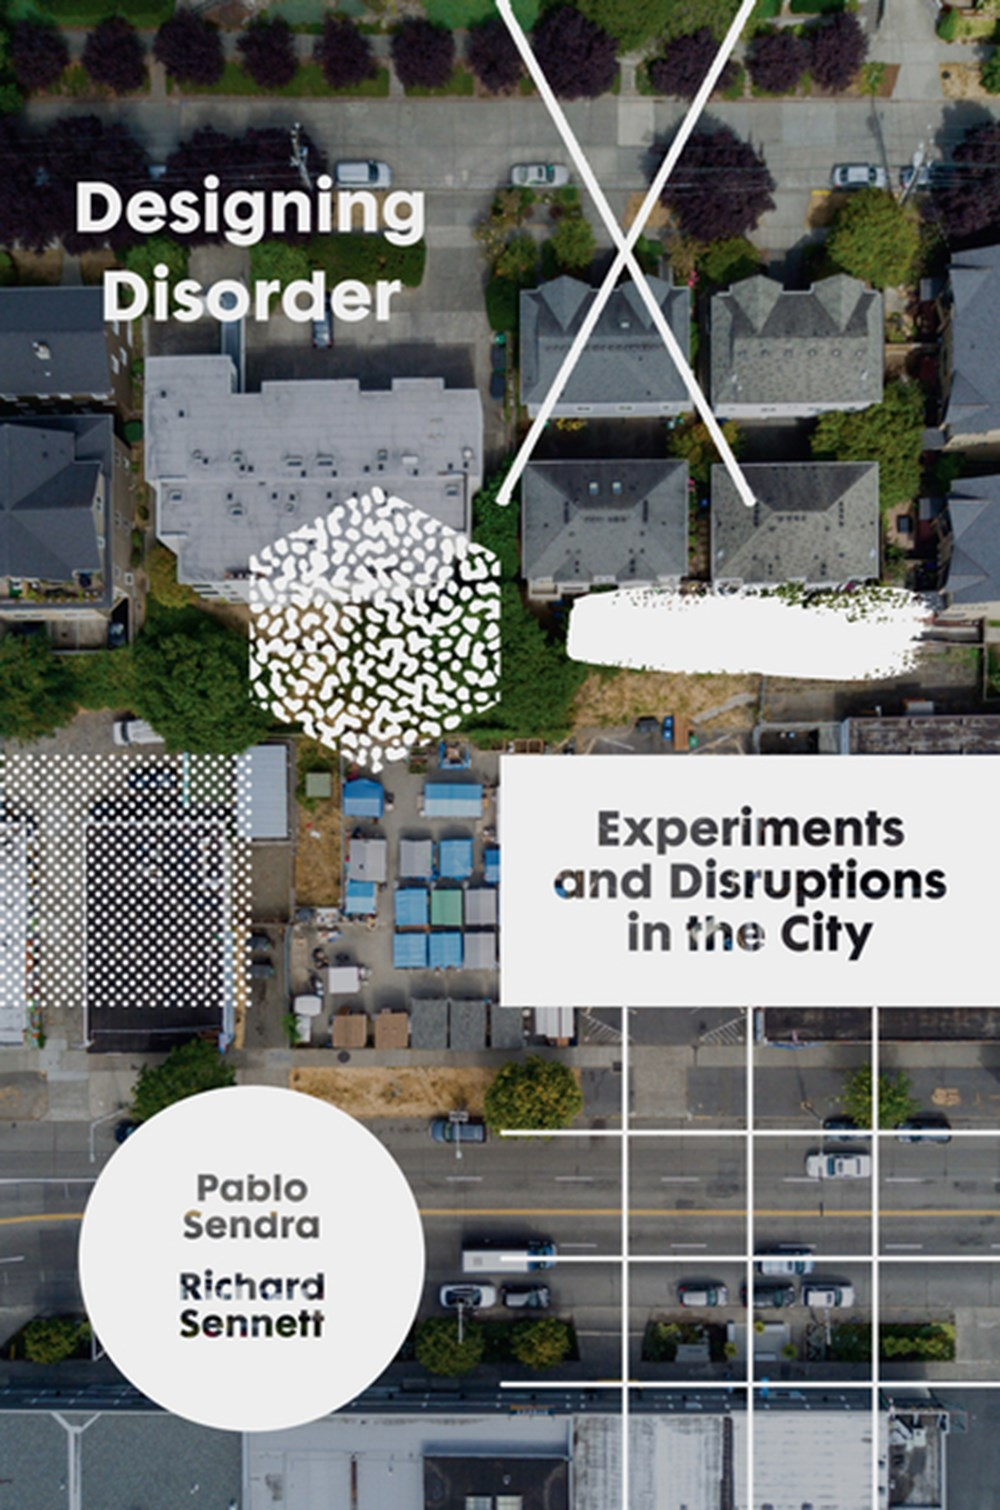 Designing Disorder Experiments and Disruptions in the City